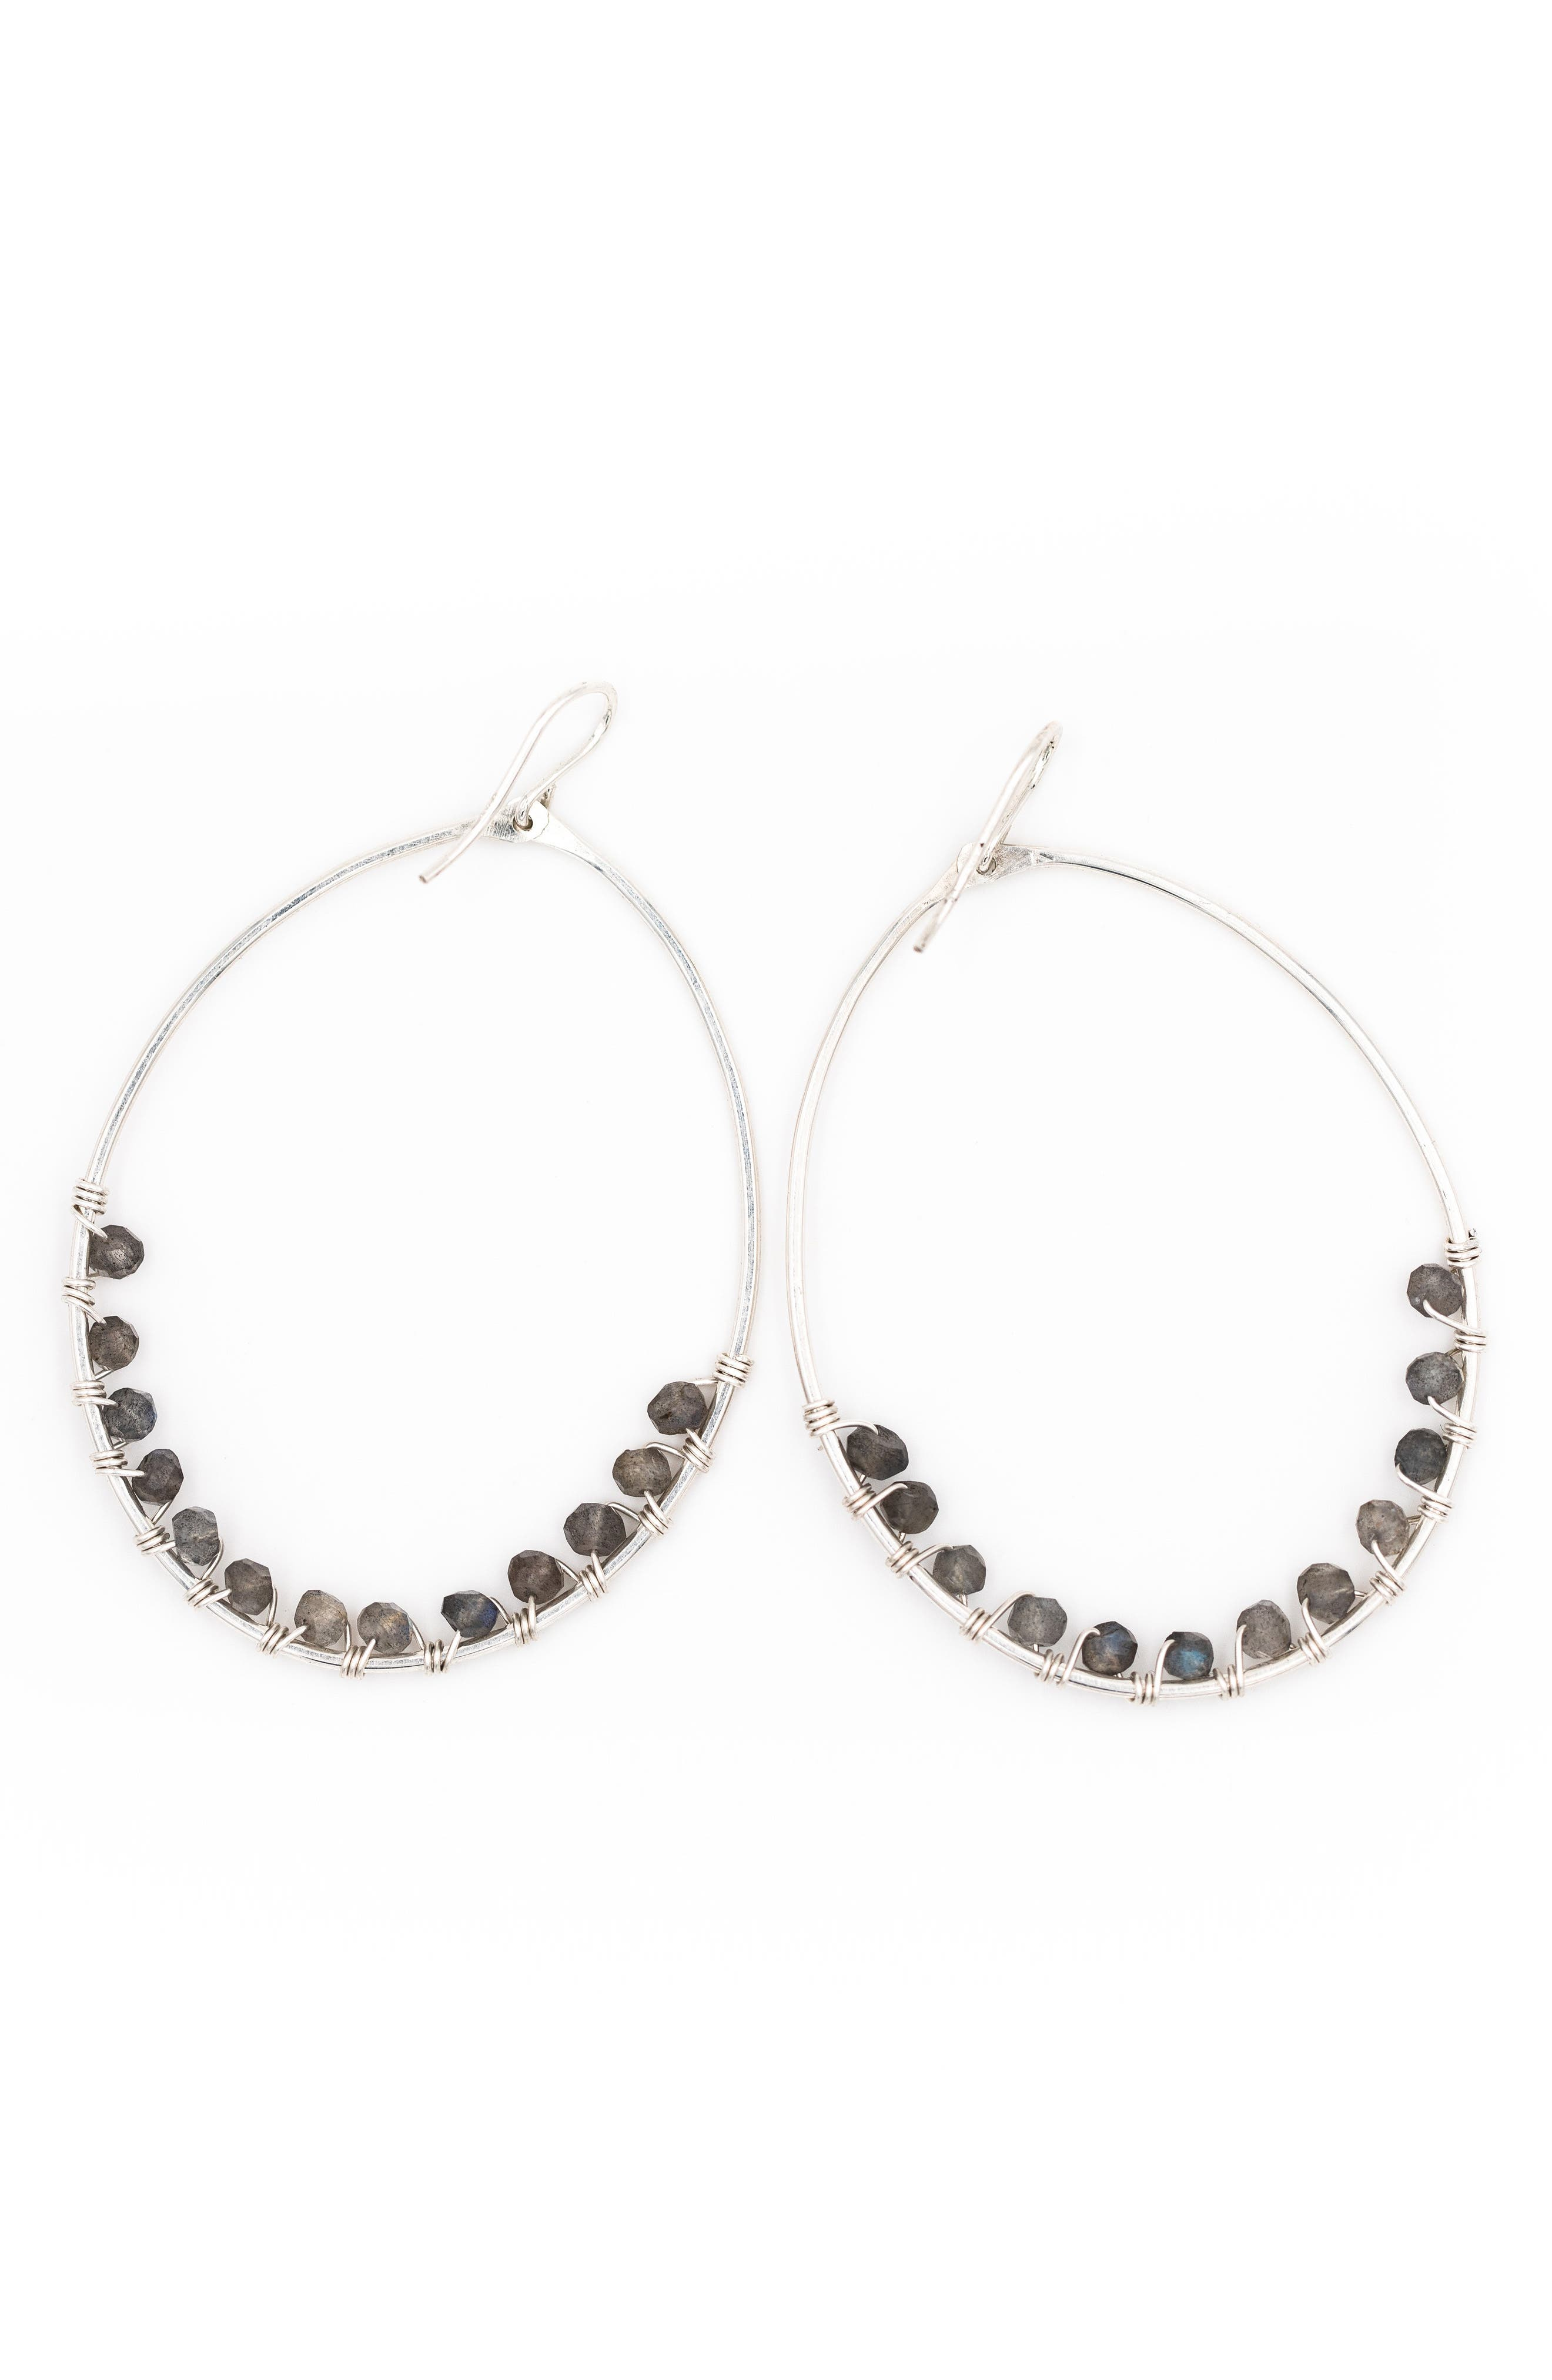 NASHELLE Lily Oval Hoop Earrings, Main, color, SILVER